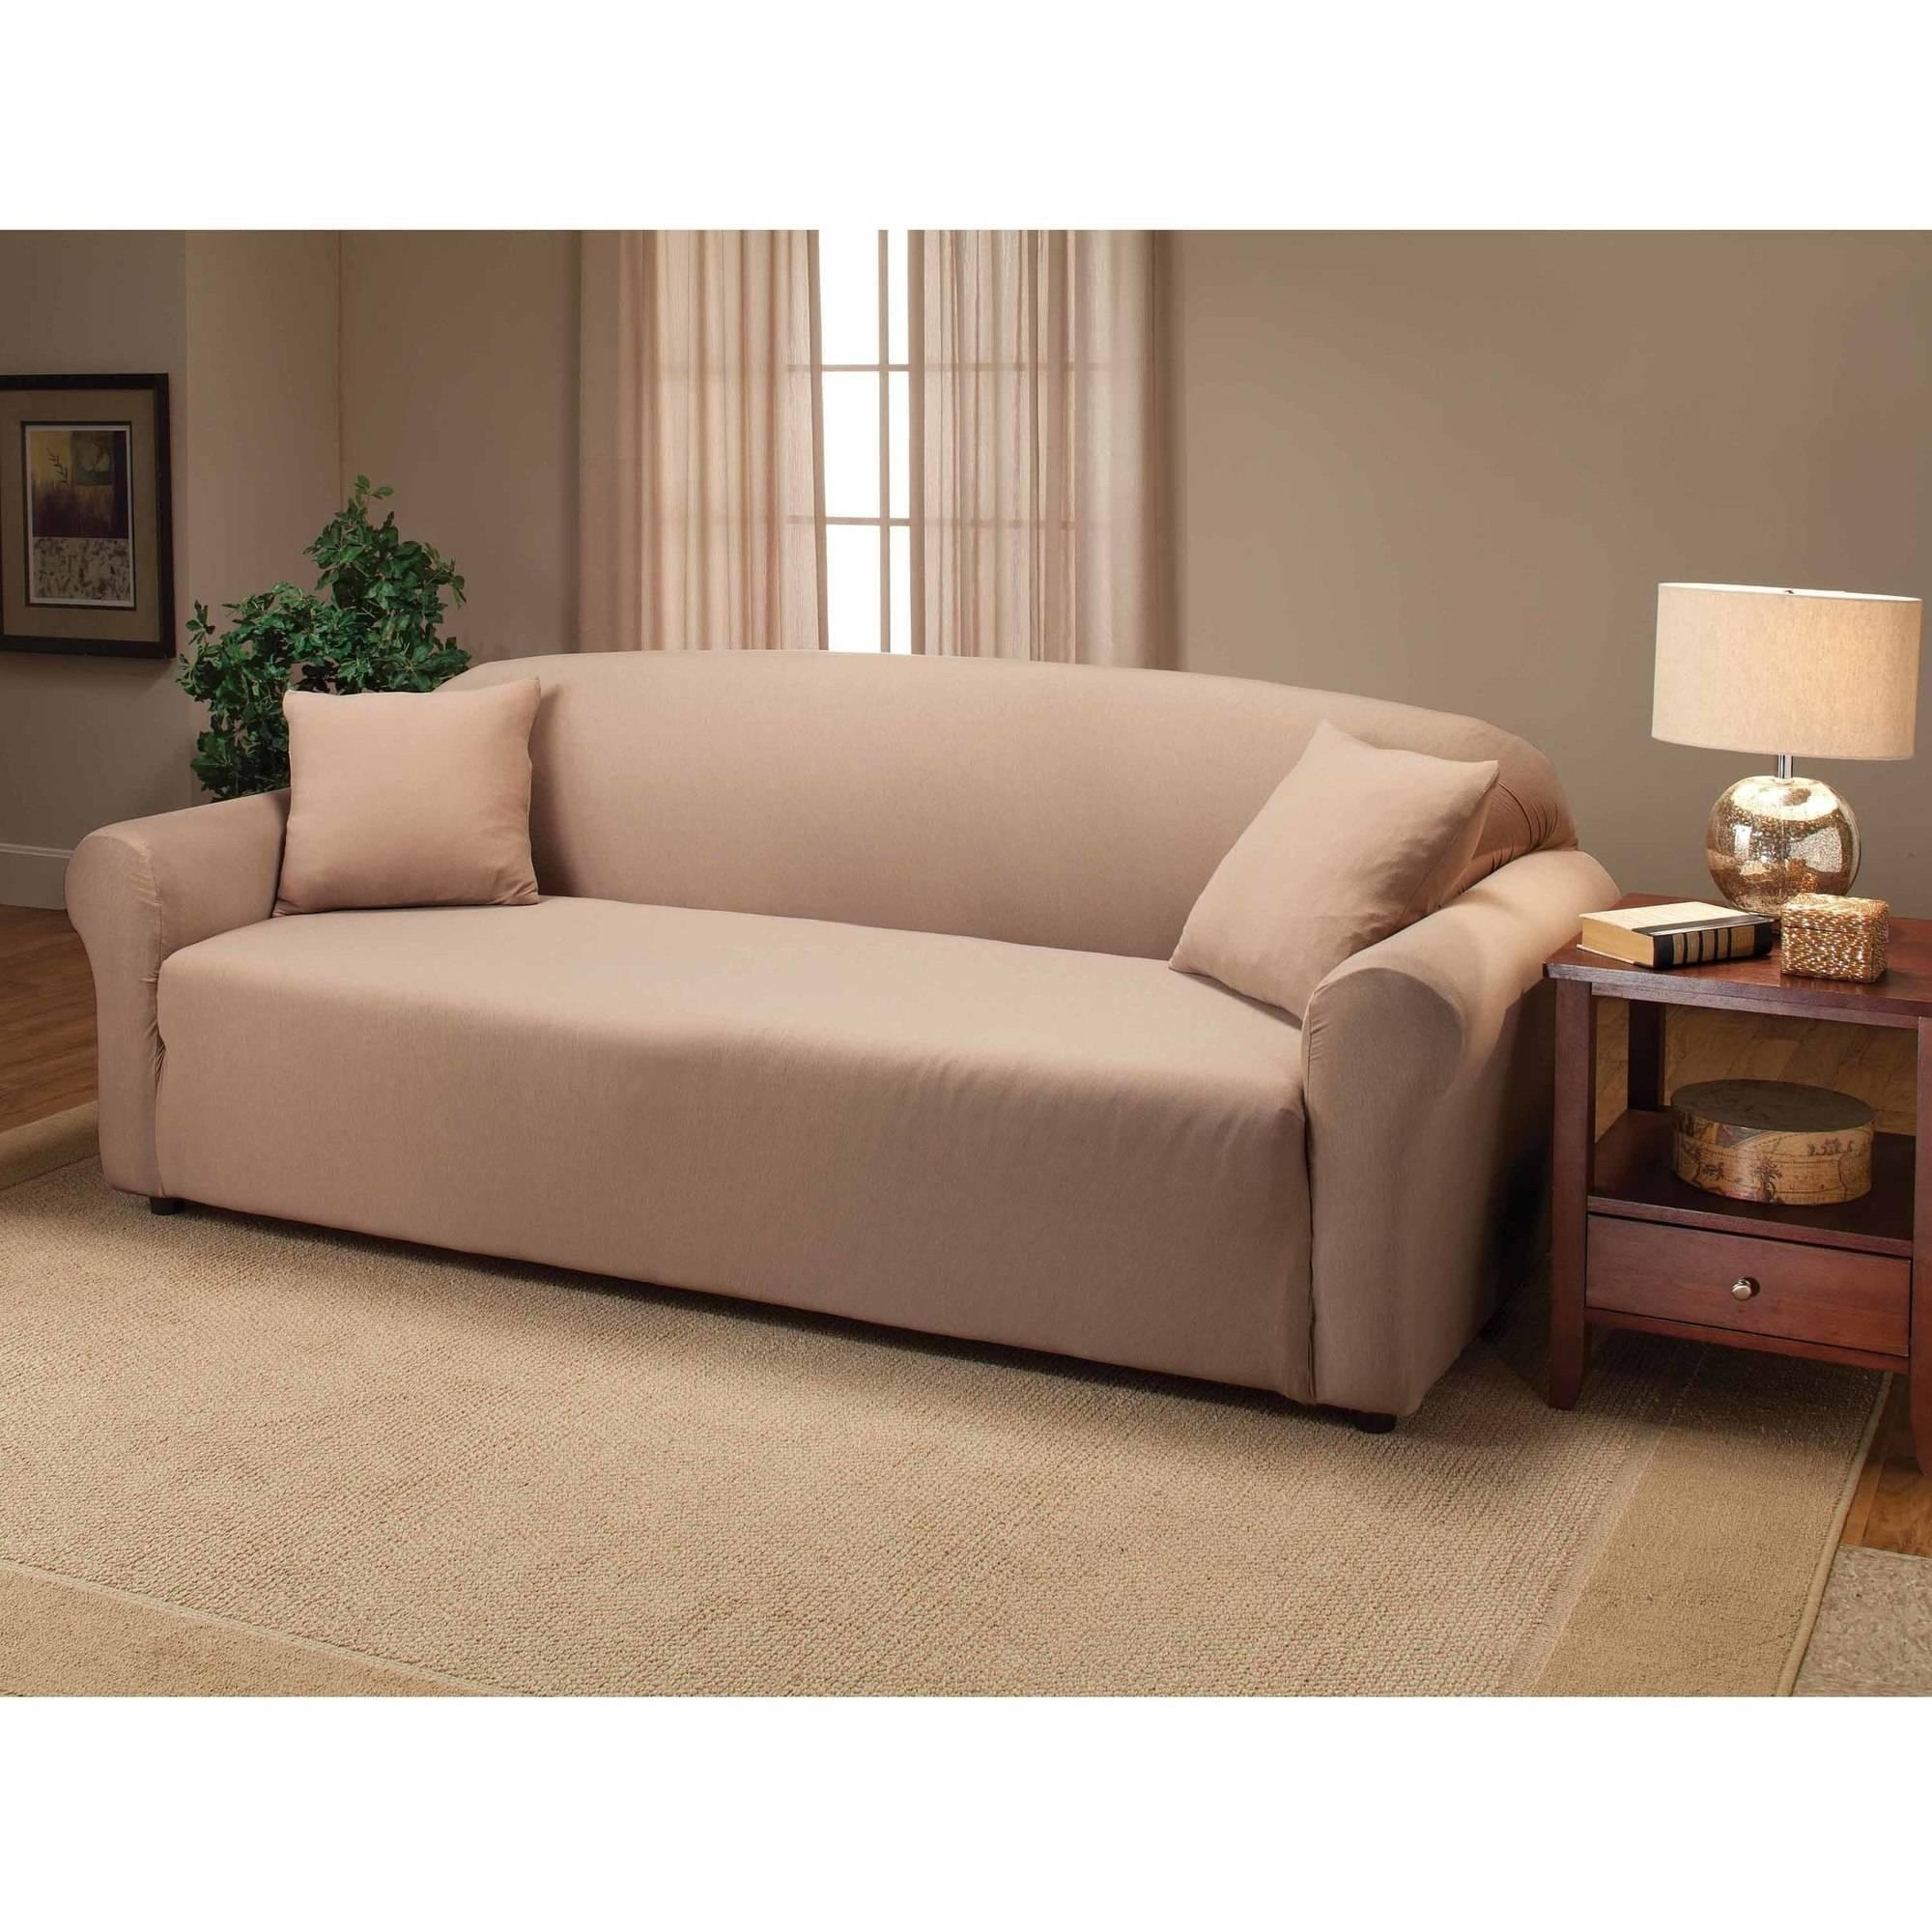 Jersey Stretch Sofa Slipcover U2013 Walmart With Suede Slipcovers For Sofas  (Image 7 Of 20